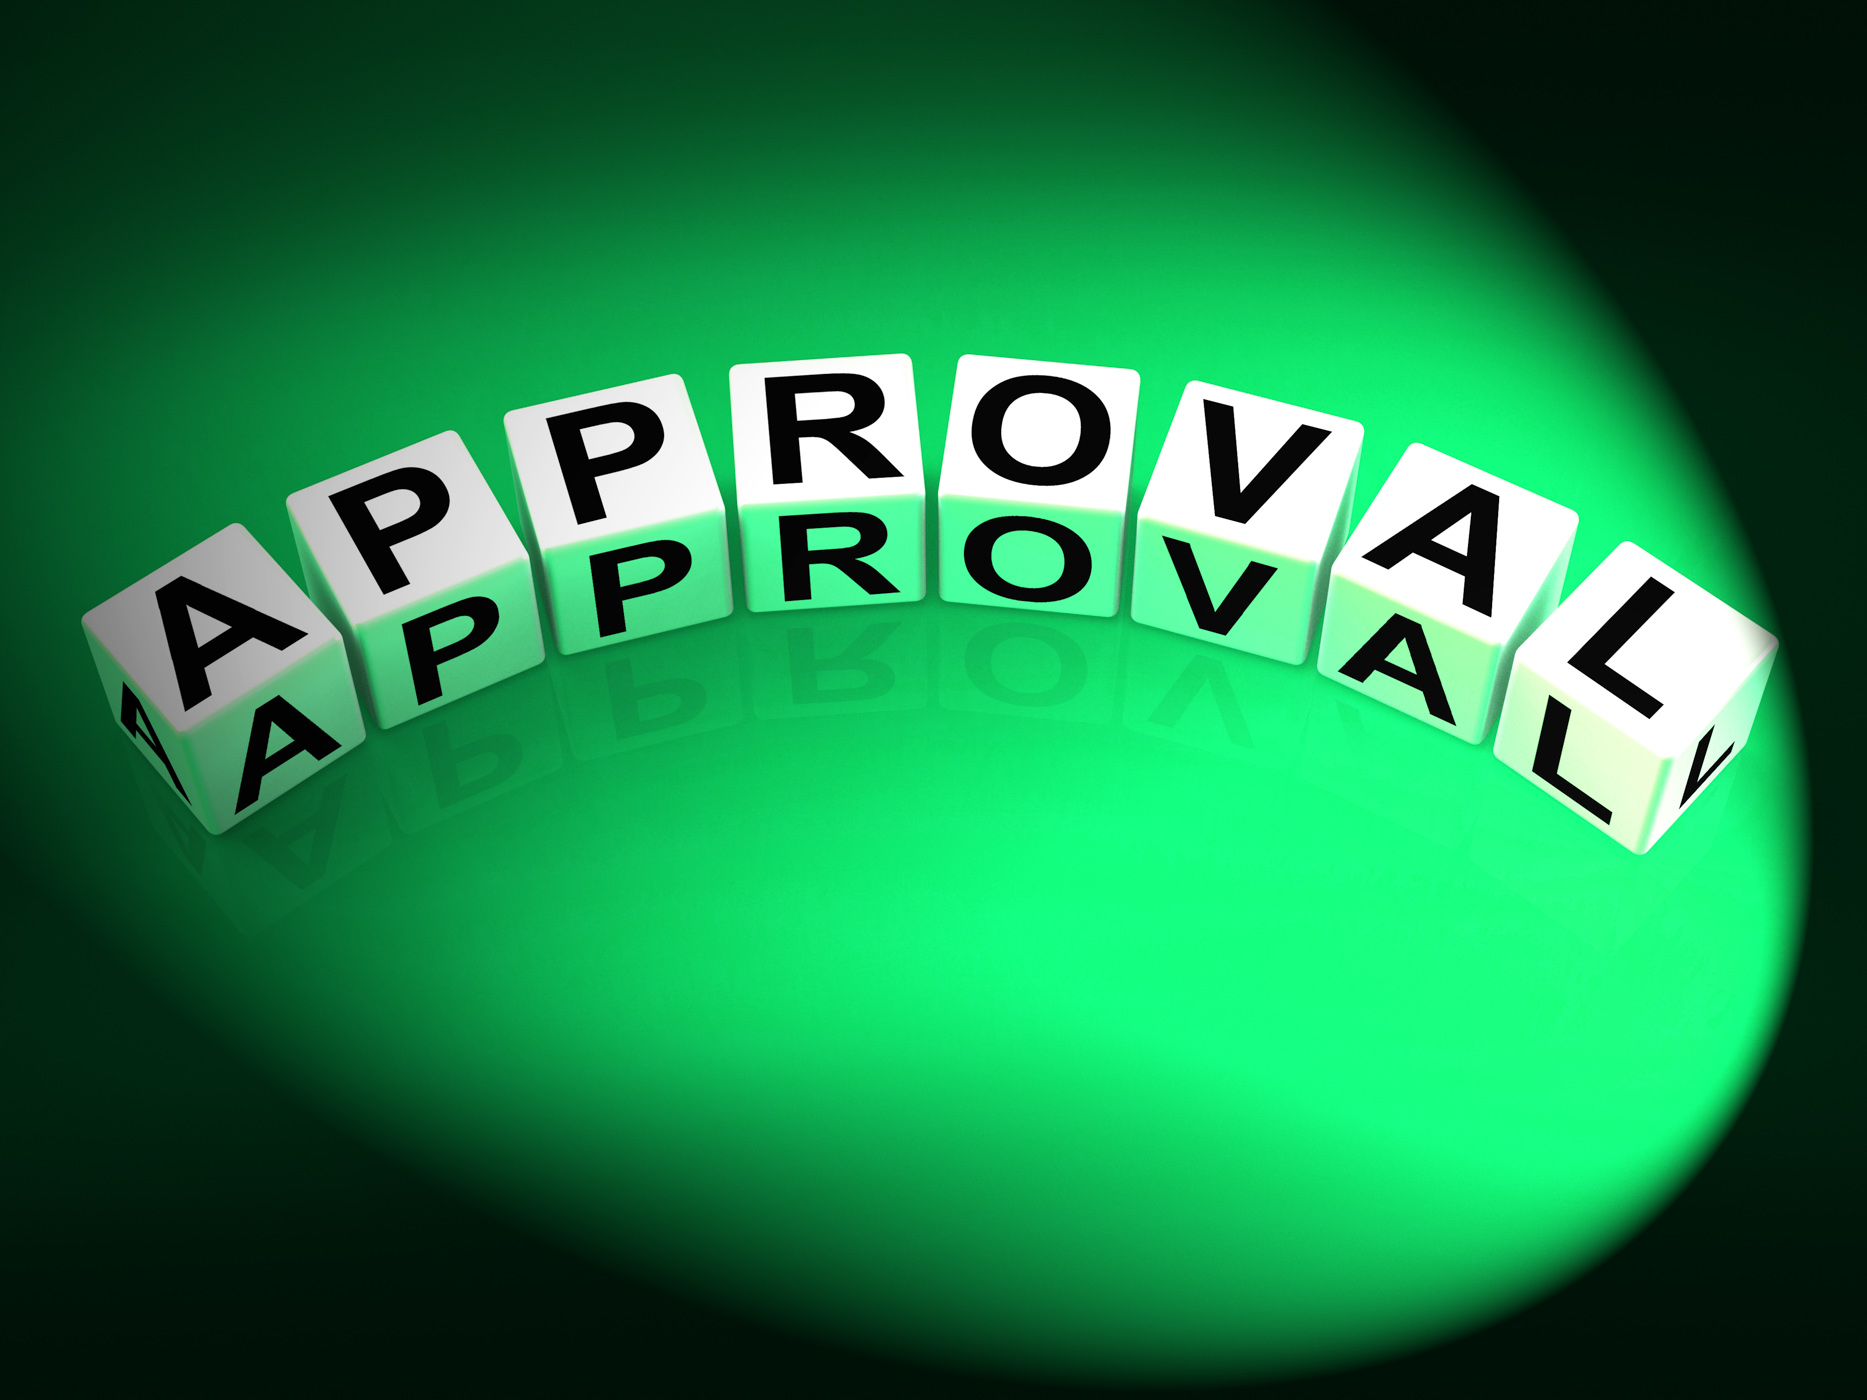 Approval Dice Show Validation Acceptance and Approved, Accept, Acceptance, Accepted, Approval, HQ Photo